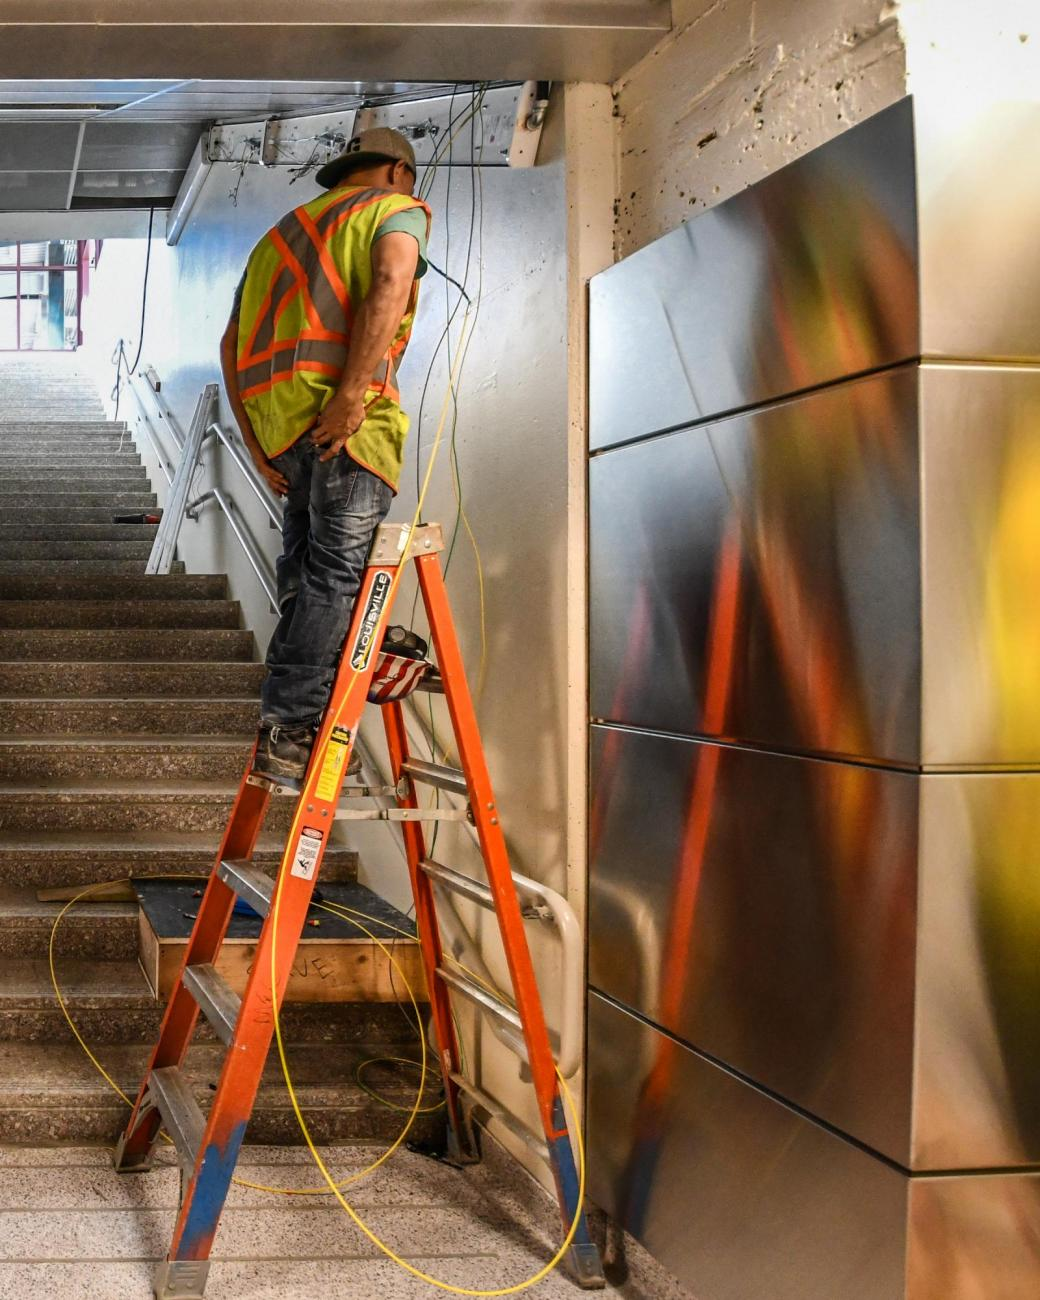 A crewman on a ladder near stairs in Wollaston Station, in the final stages of renovation. (August 7, 2019)